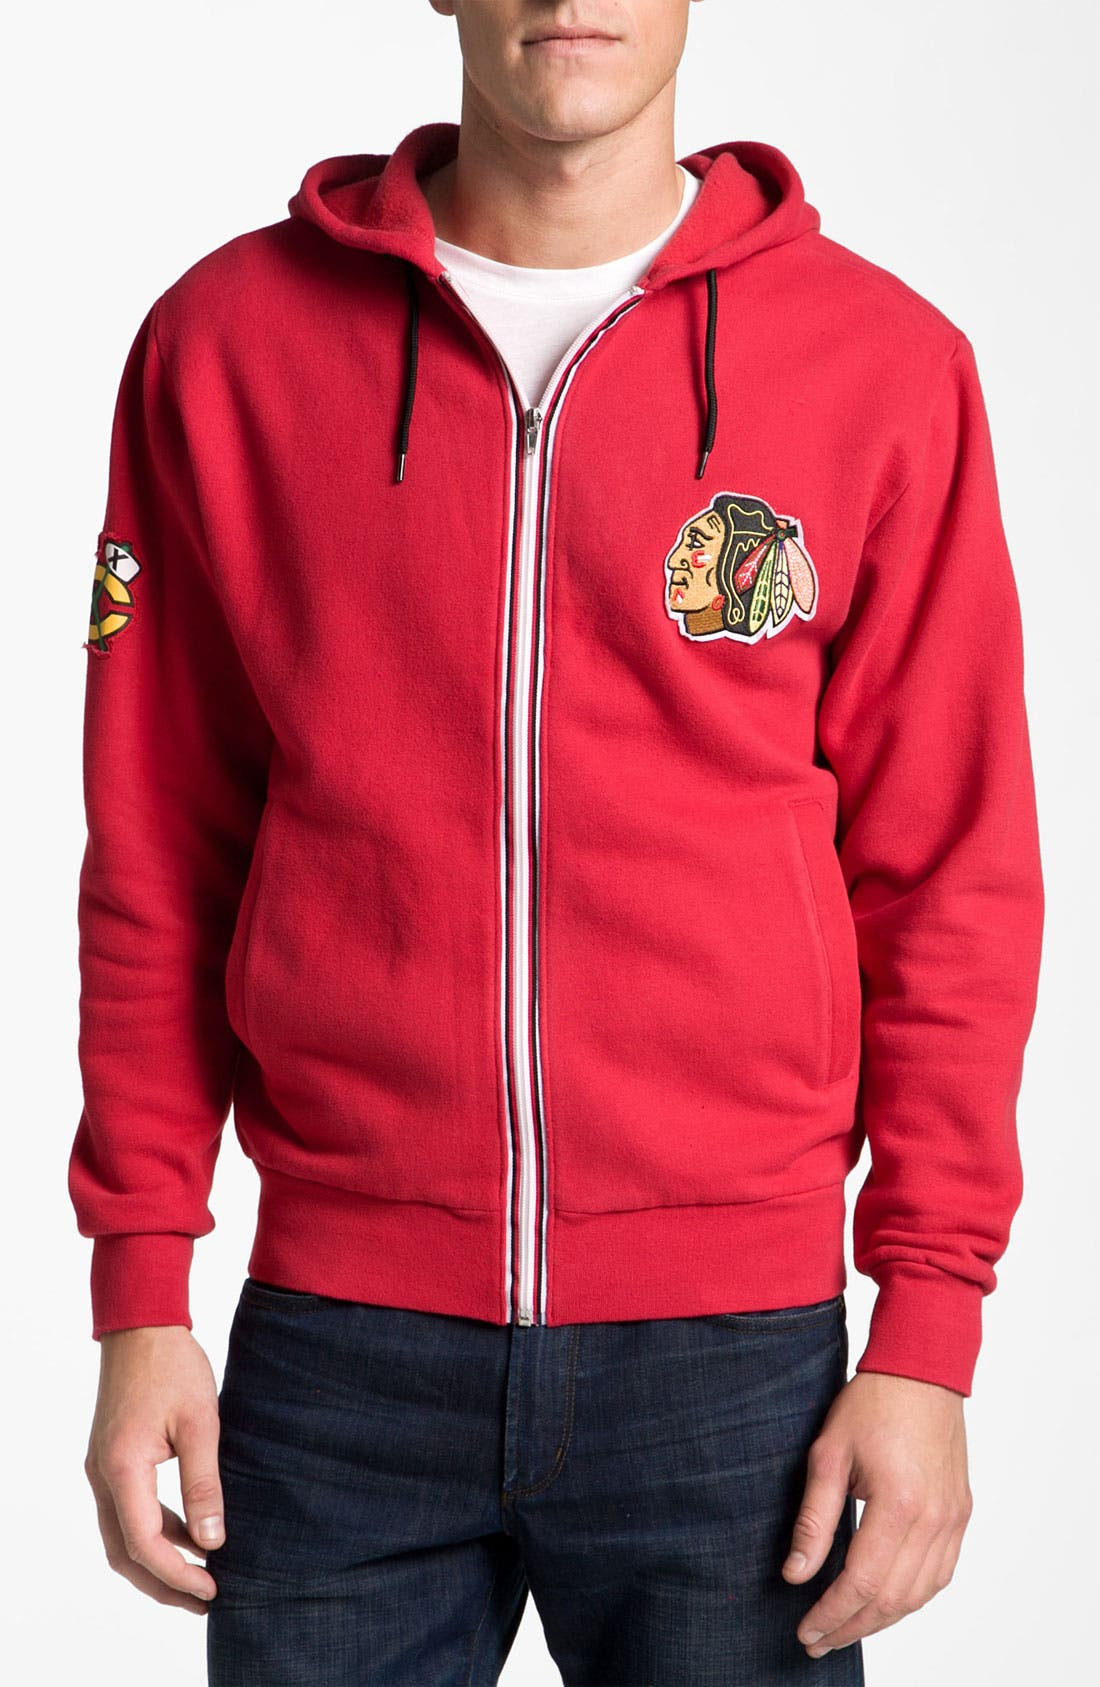 Alternate Image 1 Selected - Wright & Ditson 'Chicago Blackhawks' Hoodie